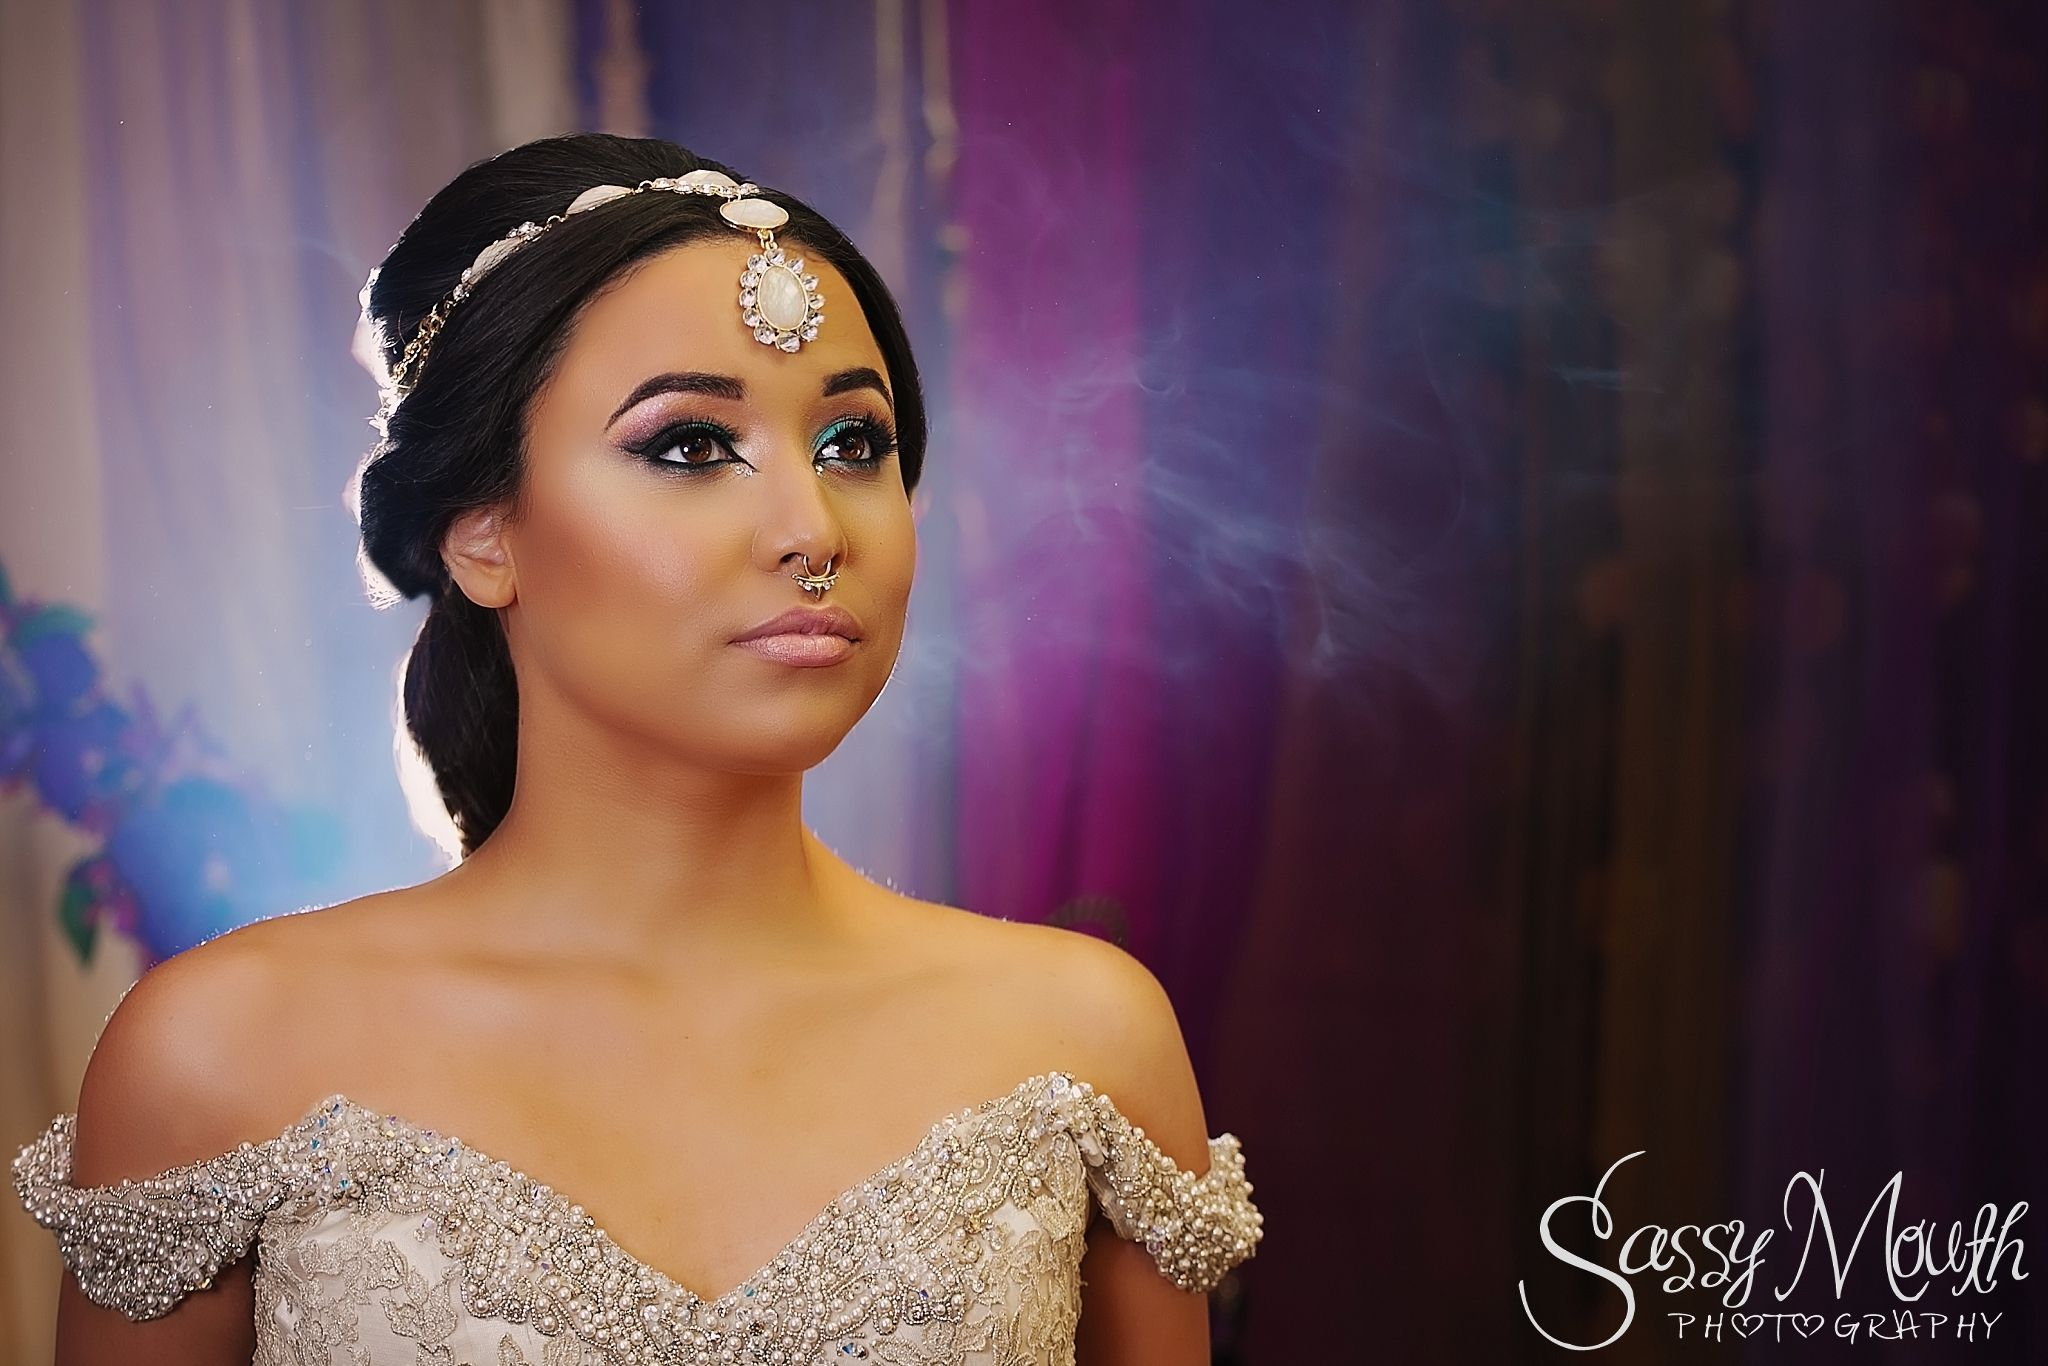 Princess Jasmine Hair And Makeup Bride Aladdin Wedding Sassy Mouth Photography Photo Series